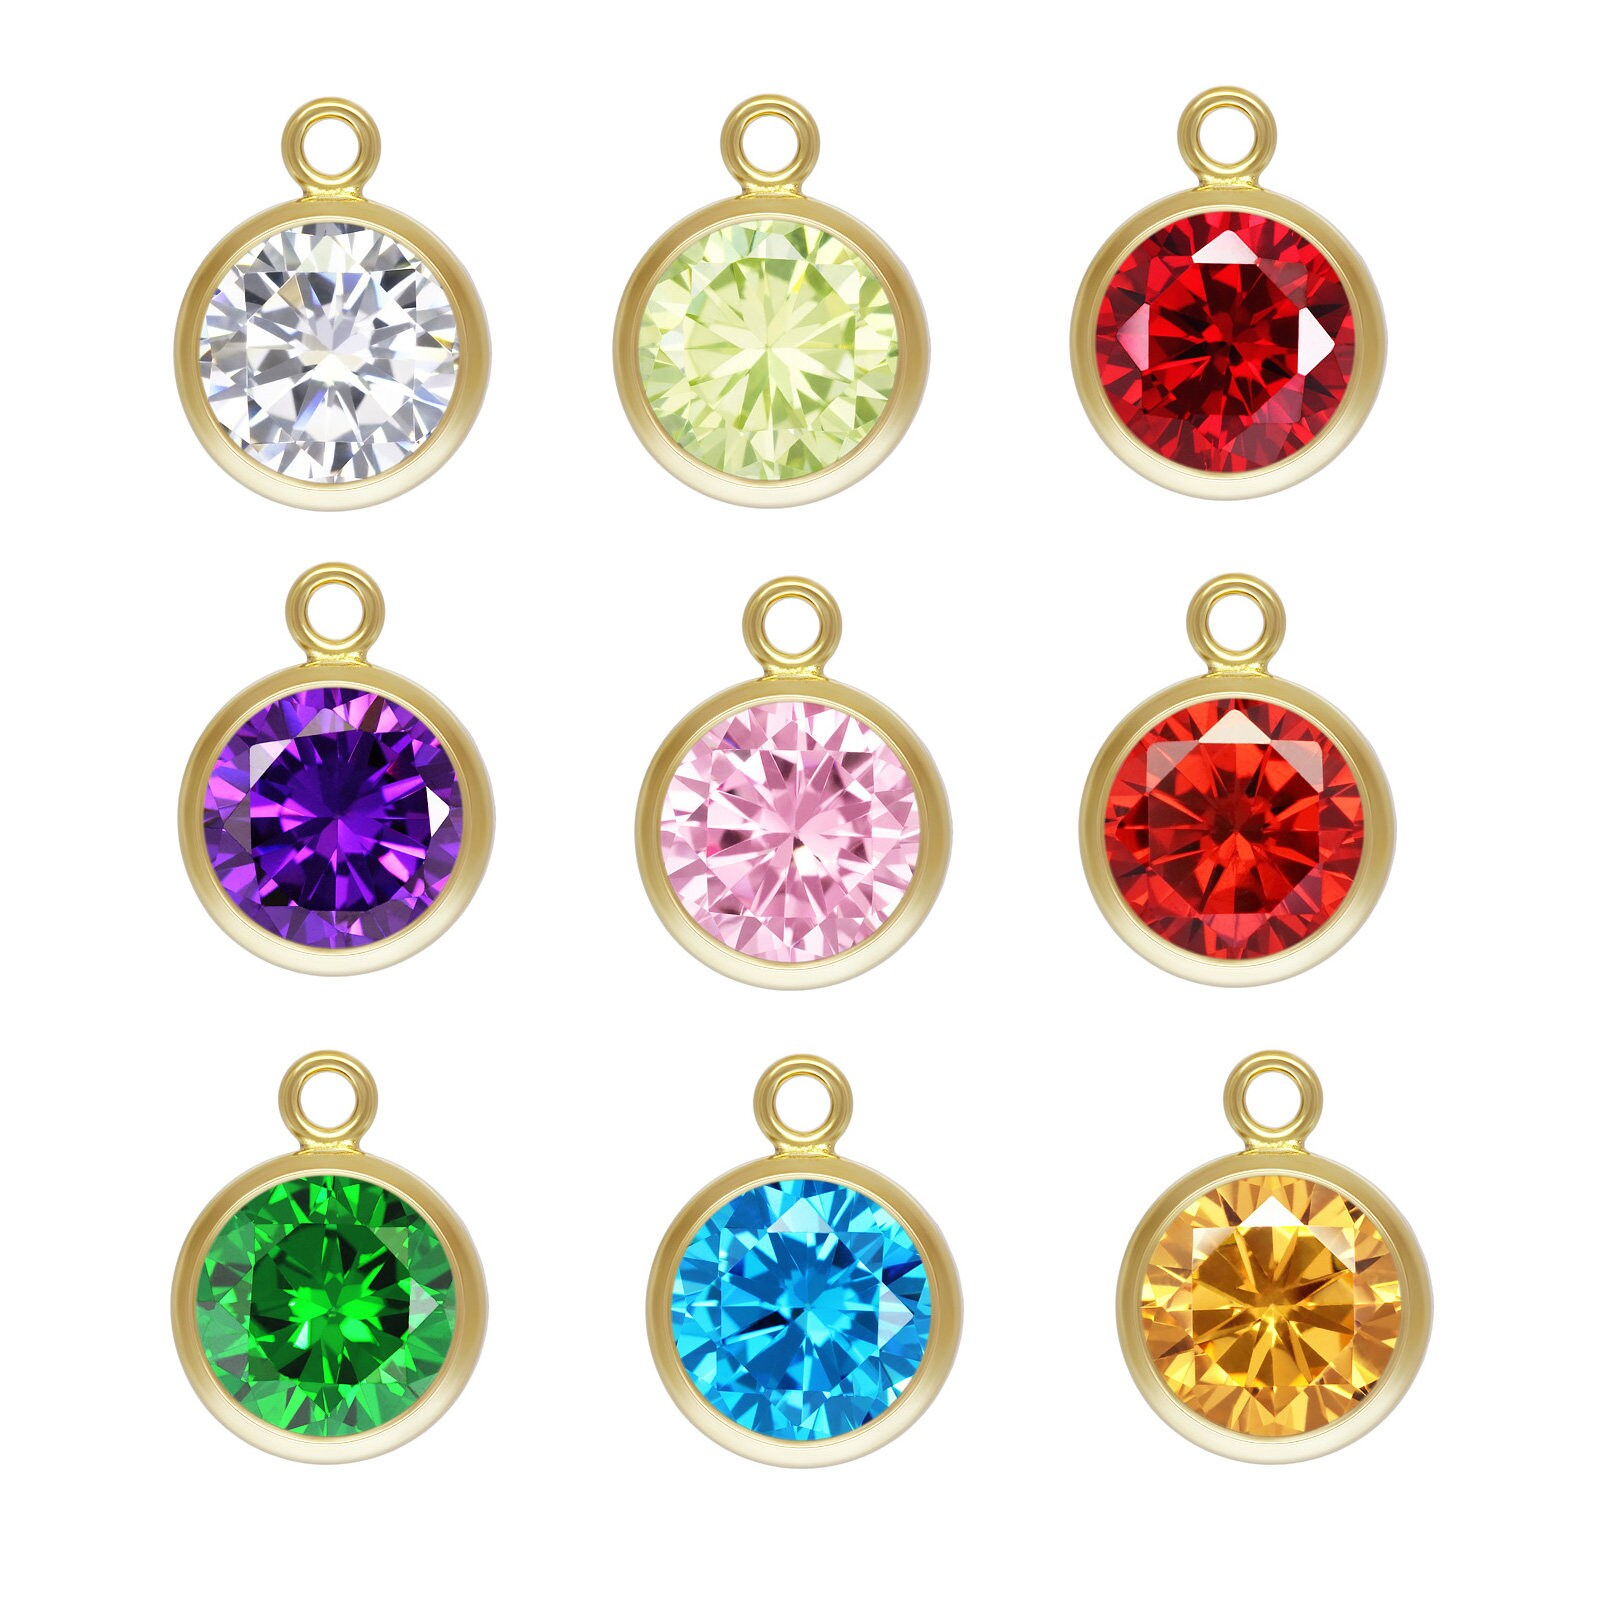 Wholesale Jewelry Gold Filled 2 Pcs 14k Gold Filled 6 0mm 3a Cz Bezel Drop 14kt Gf Bezel Charm Made In Usa Wholesale Jewelry Supply 168x6